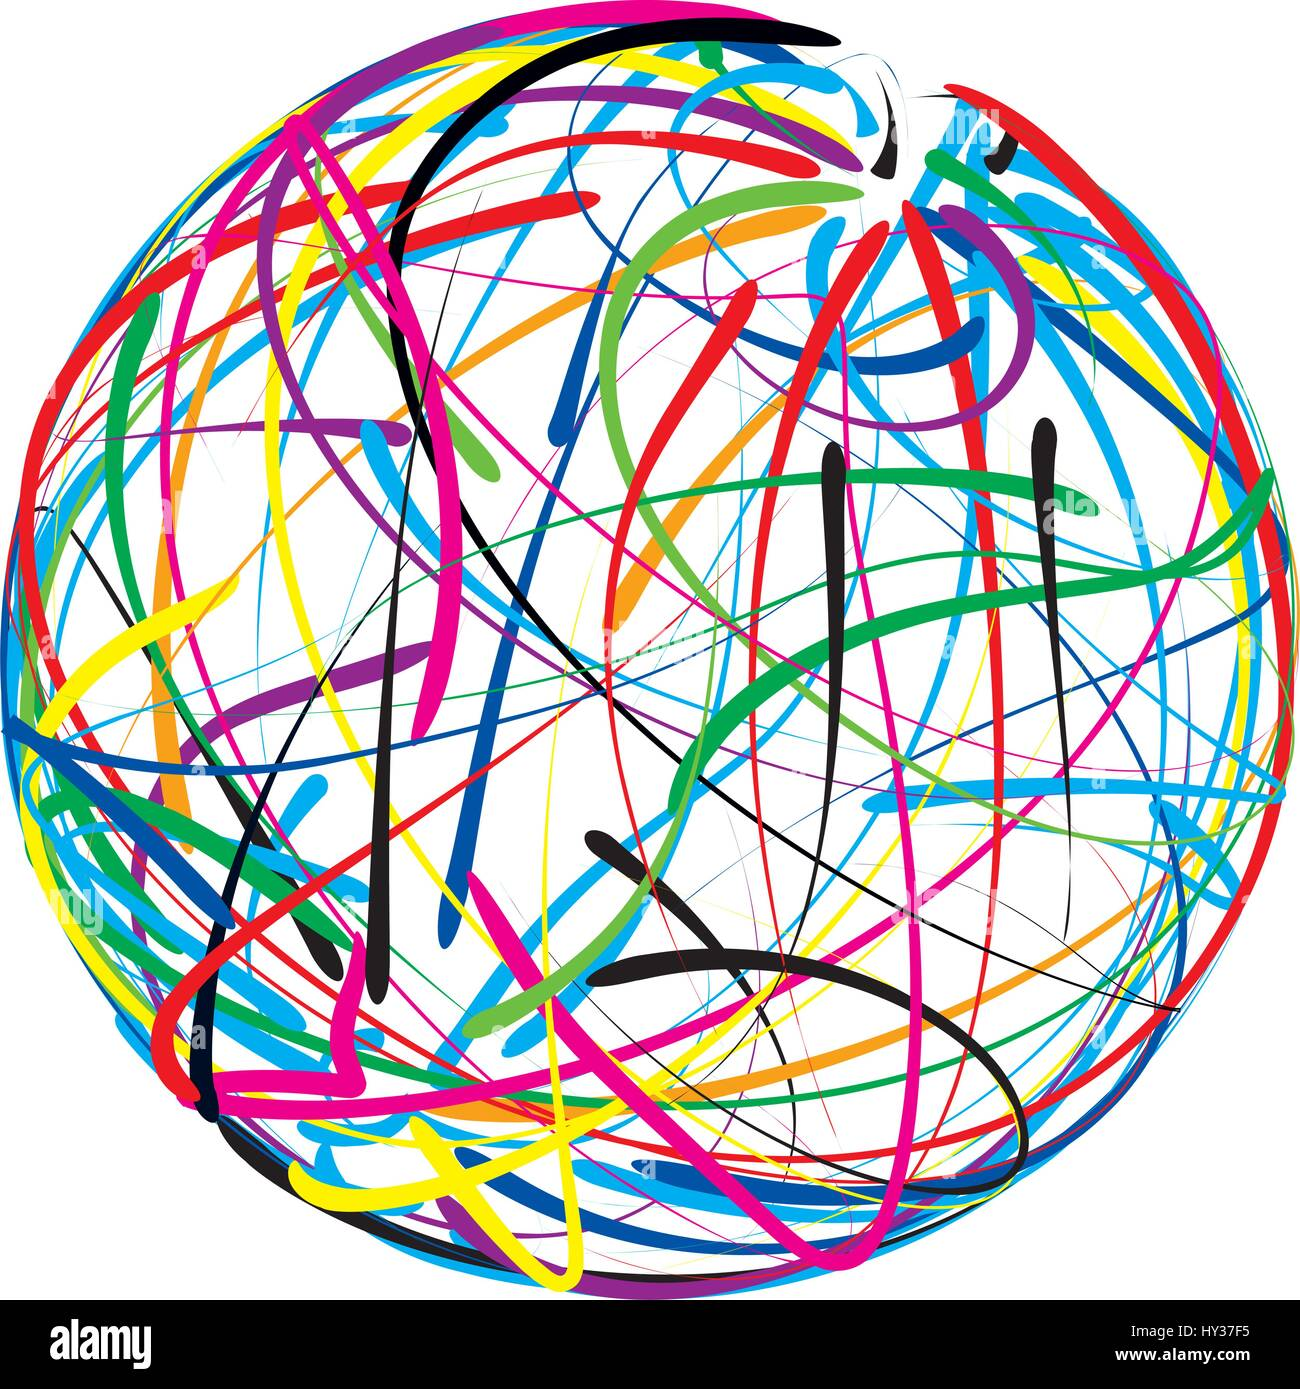 Scribble ball vector illustrated icon - Stock Image